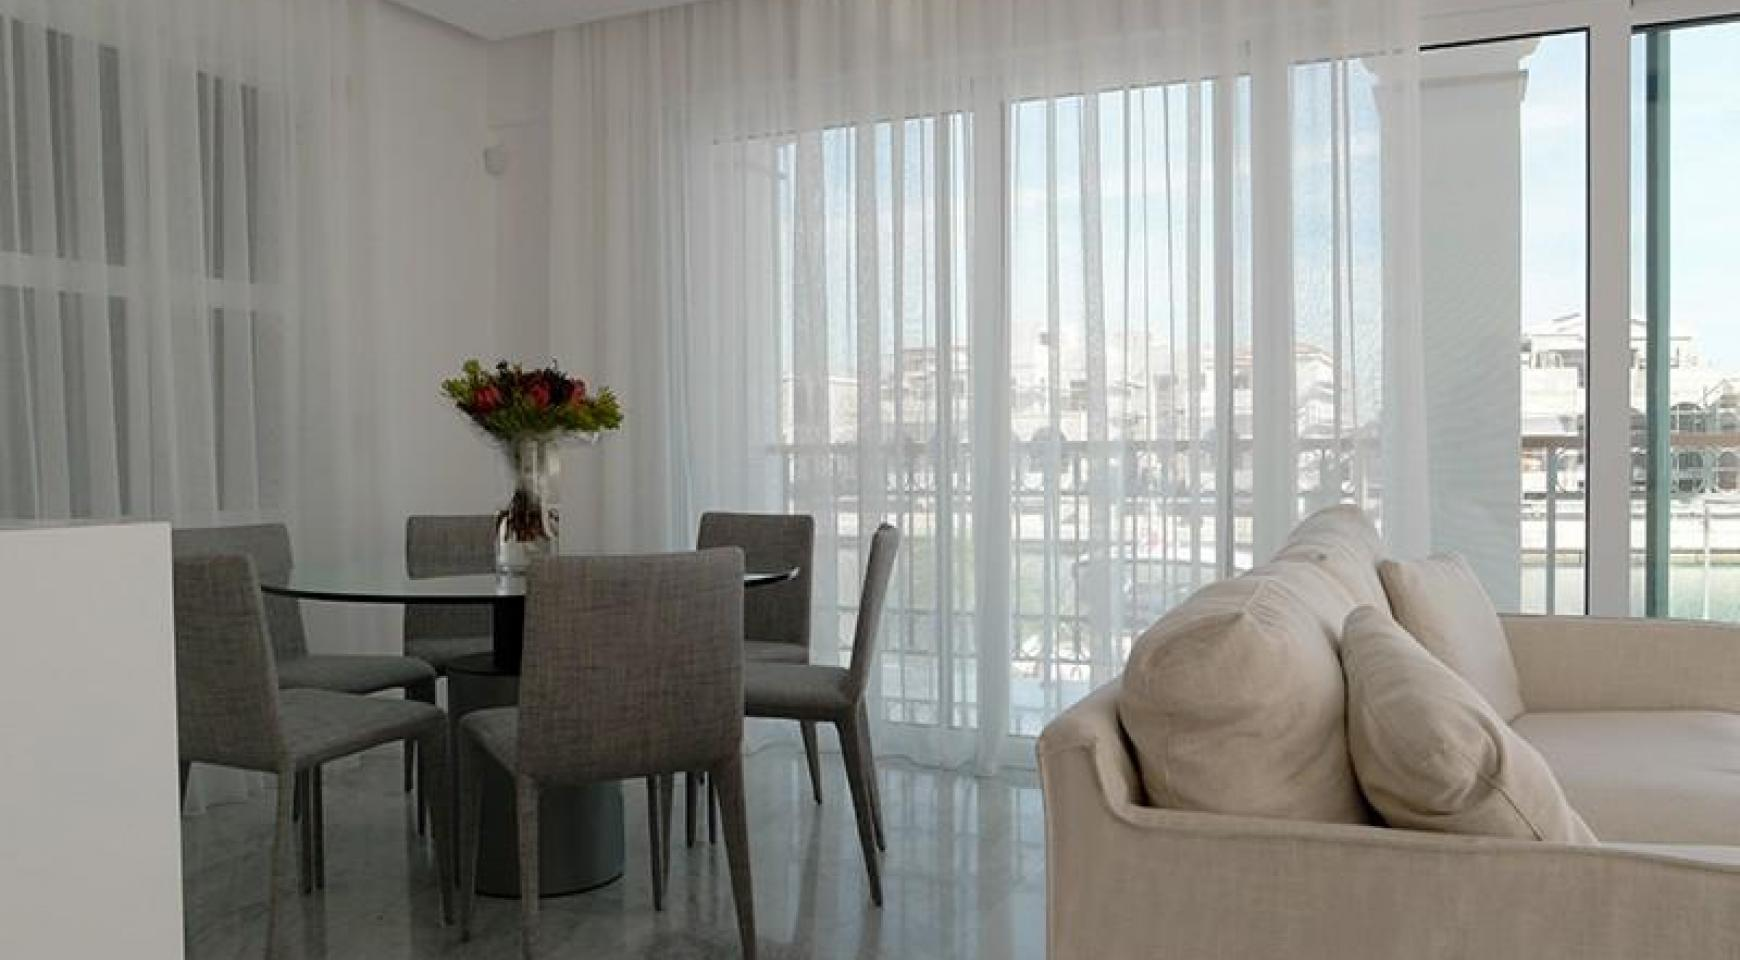 Luxurious 3 Bedroom Villa in an Exclusive development by the Sea - 11